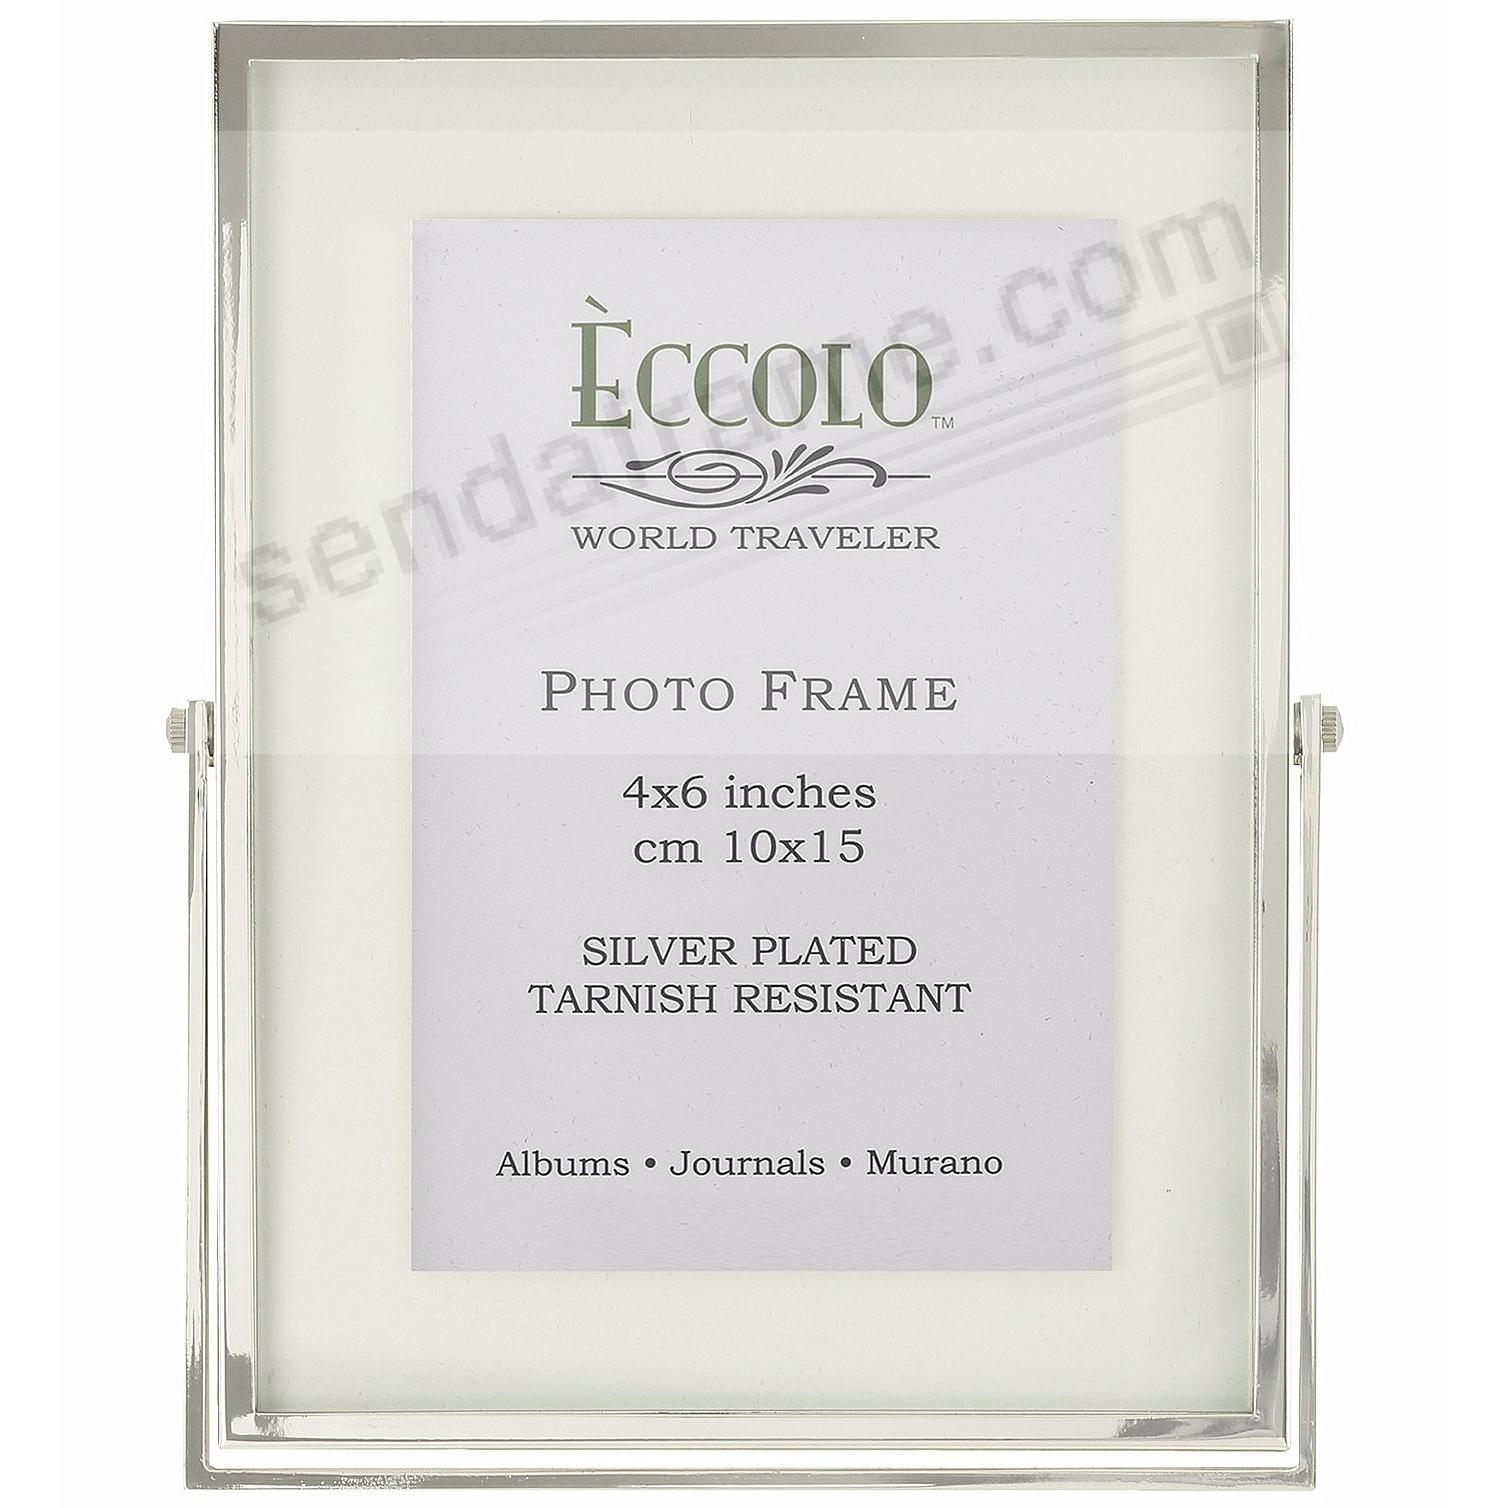 Silverplate FLOATING GLASS 4x6 by Eccolo® - Picture Frames, Photo ...